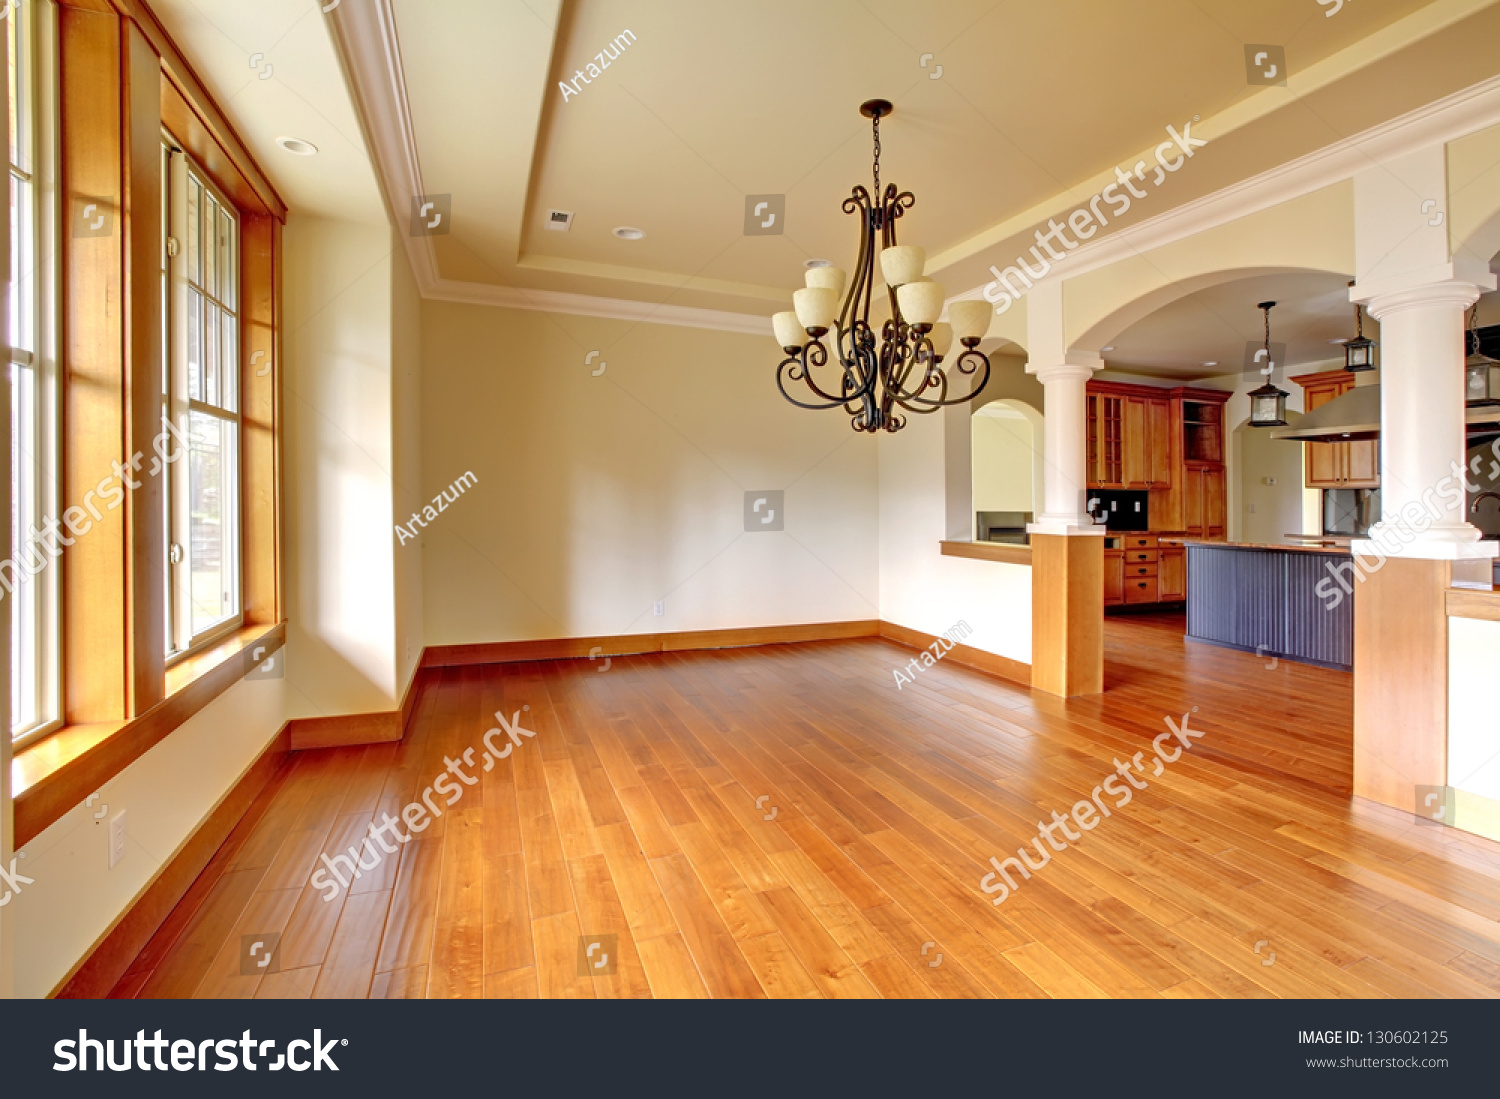 Large Kitchen Dining Room Large Luxury Dining Room Interior Kitchen Stock Photo 130602125